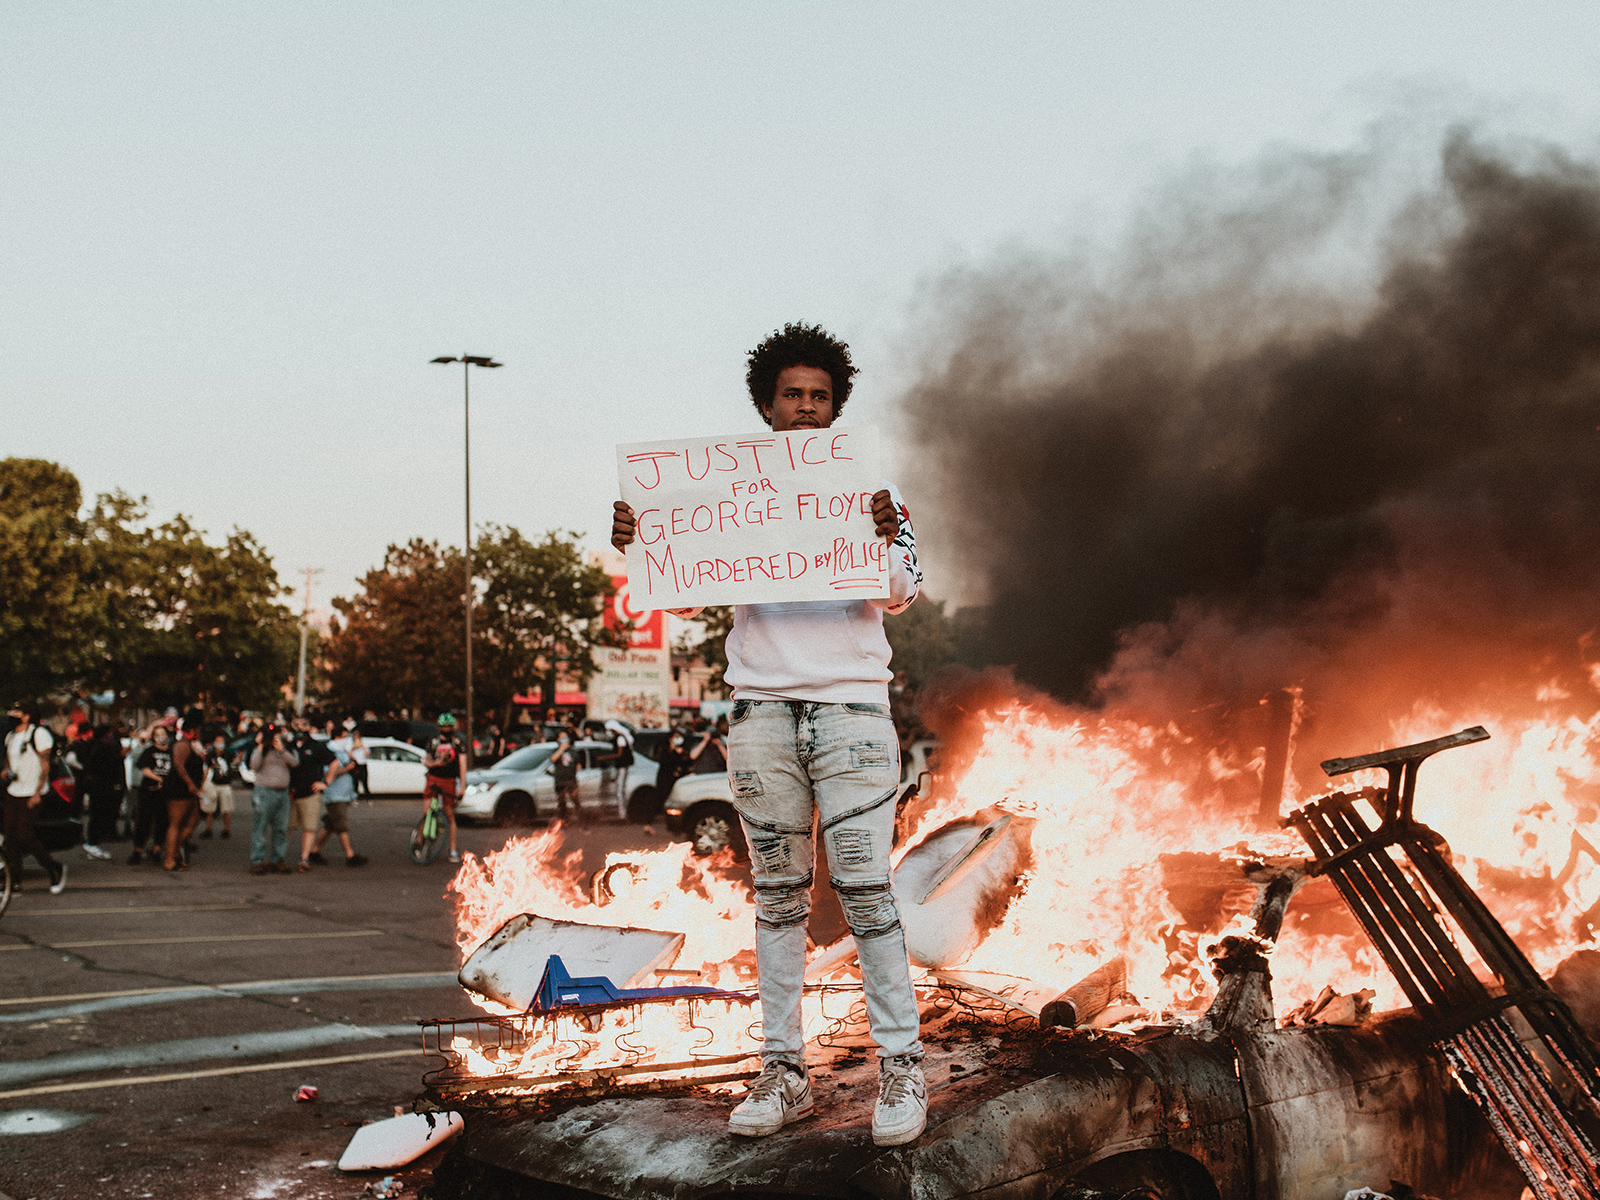 a man standing with a protest sign in front of a blazing fire